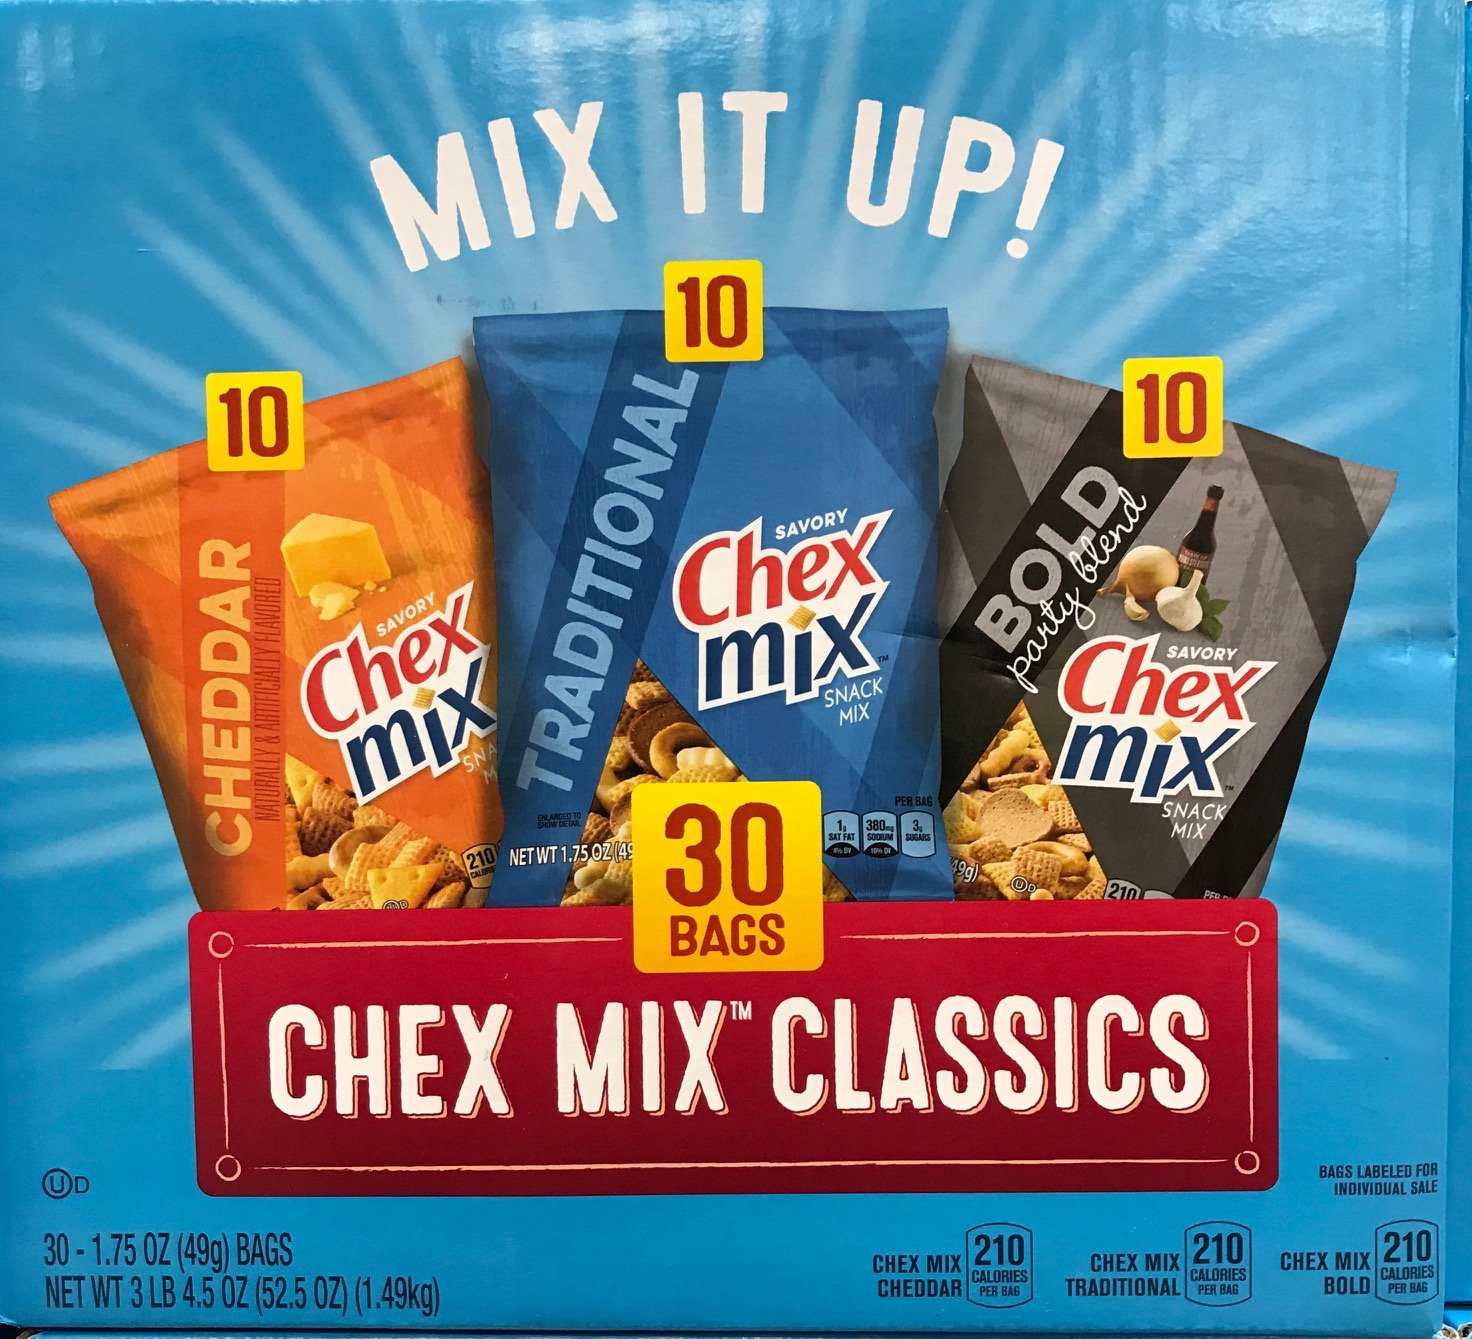 Chex Mix Classics - Cheddar - Traditional - Bold - 30 Bags - Variety Pack! by Chex